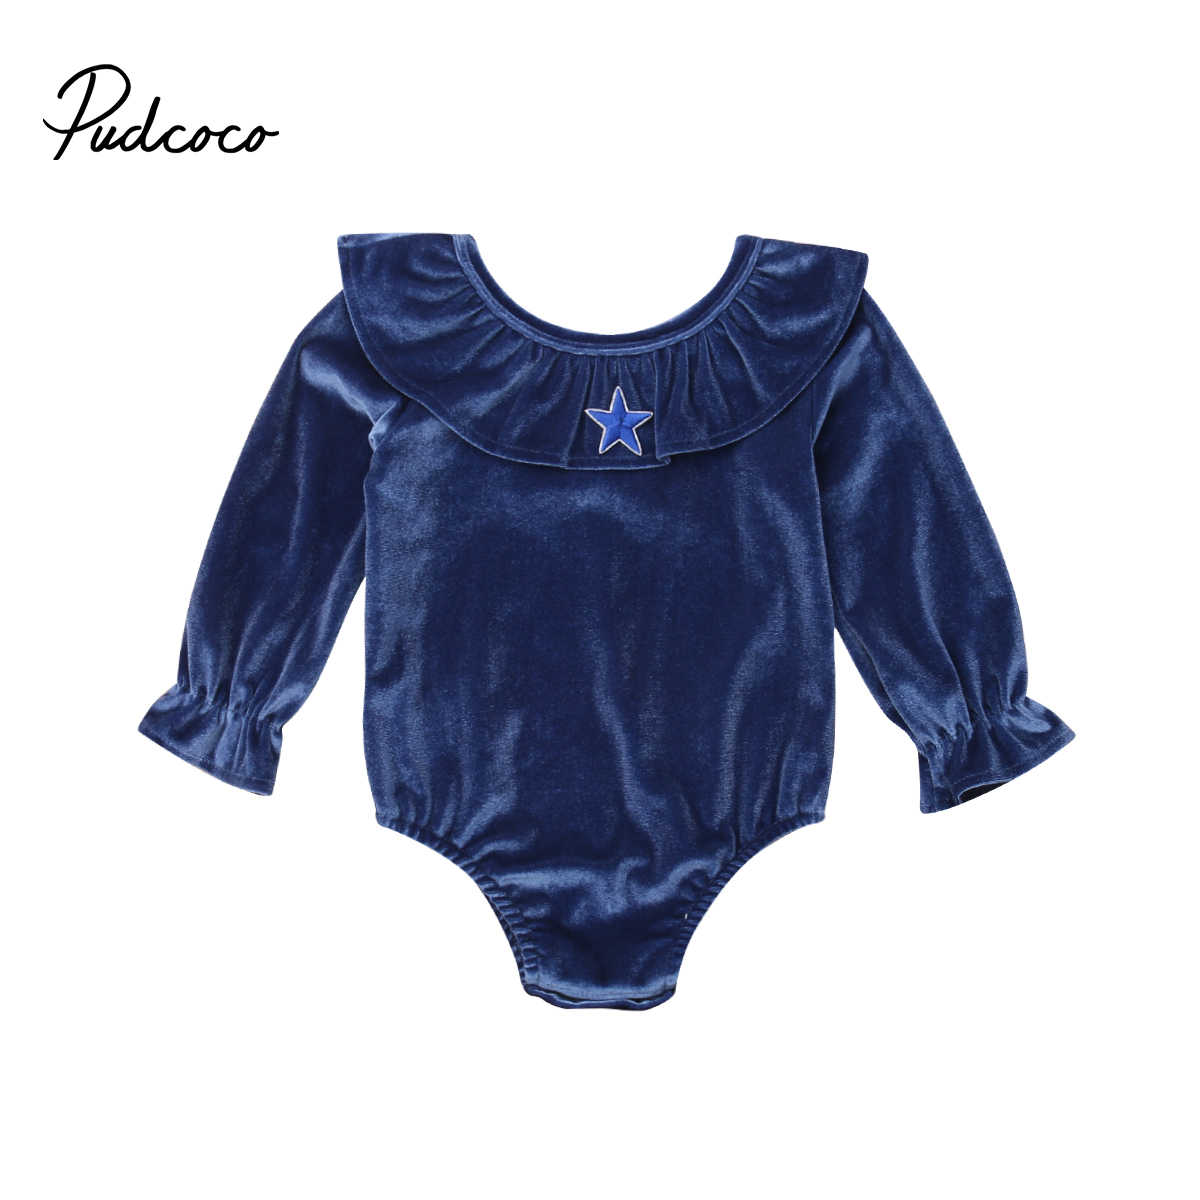 ec6fc76a8 2019 Brand New Newborn Kids Baby Girl Velvet Romper Long Sleeve Ruffled  Neck Jumpsuit Playsuit Solid Clothes Outfit Playsuit